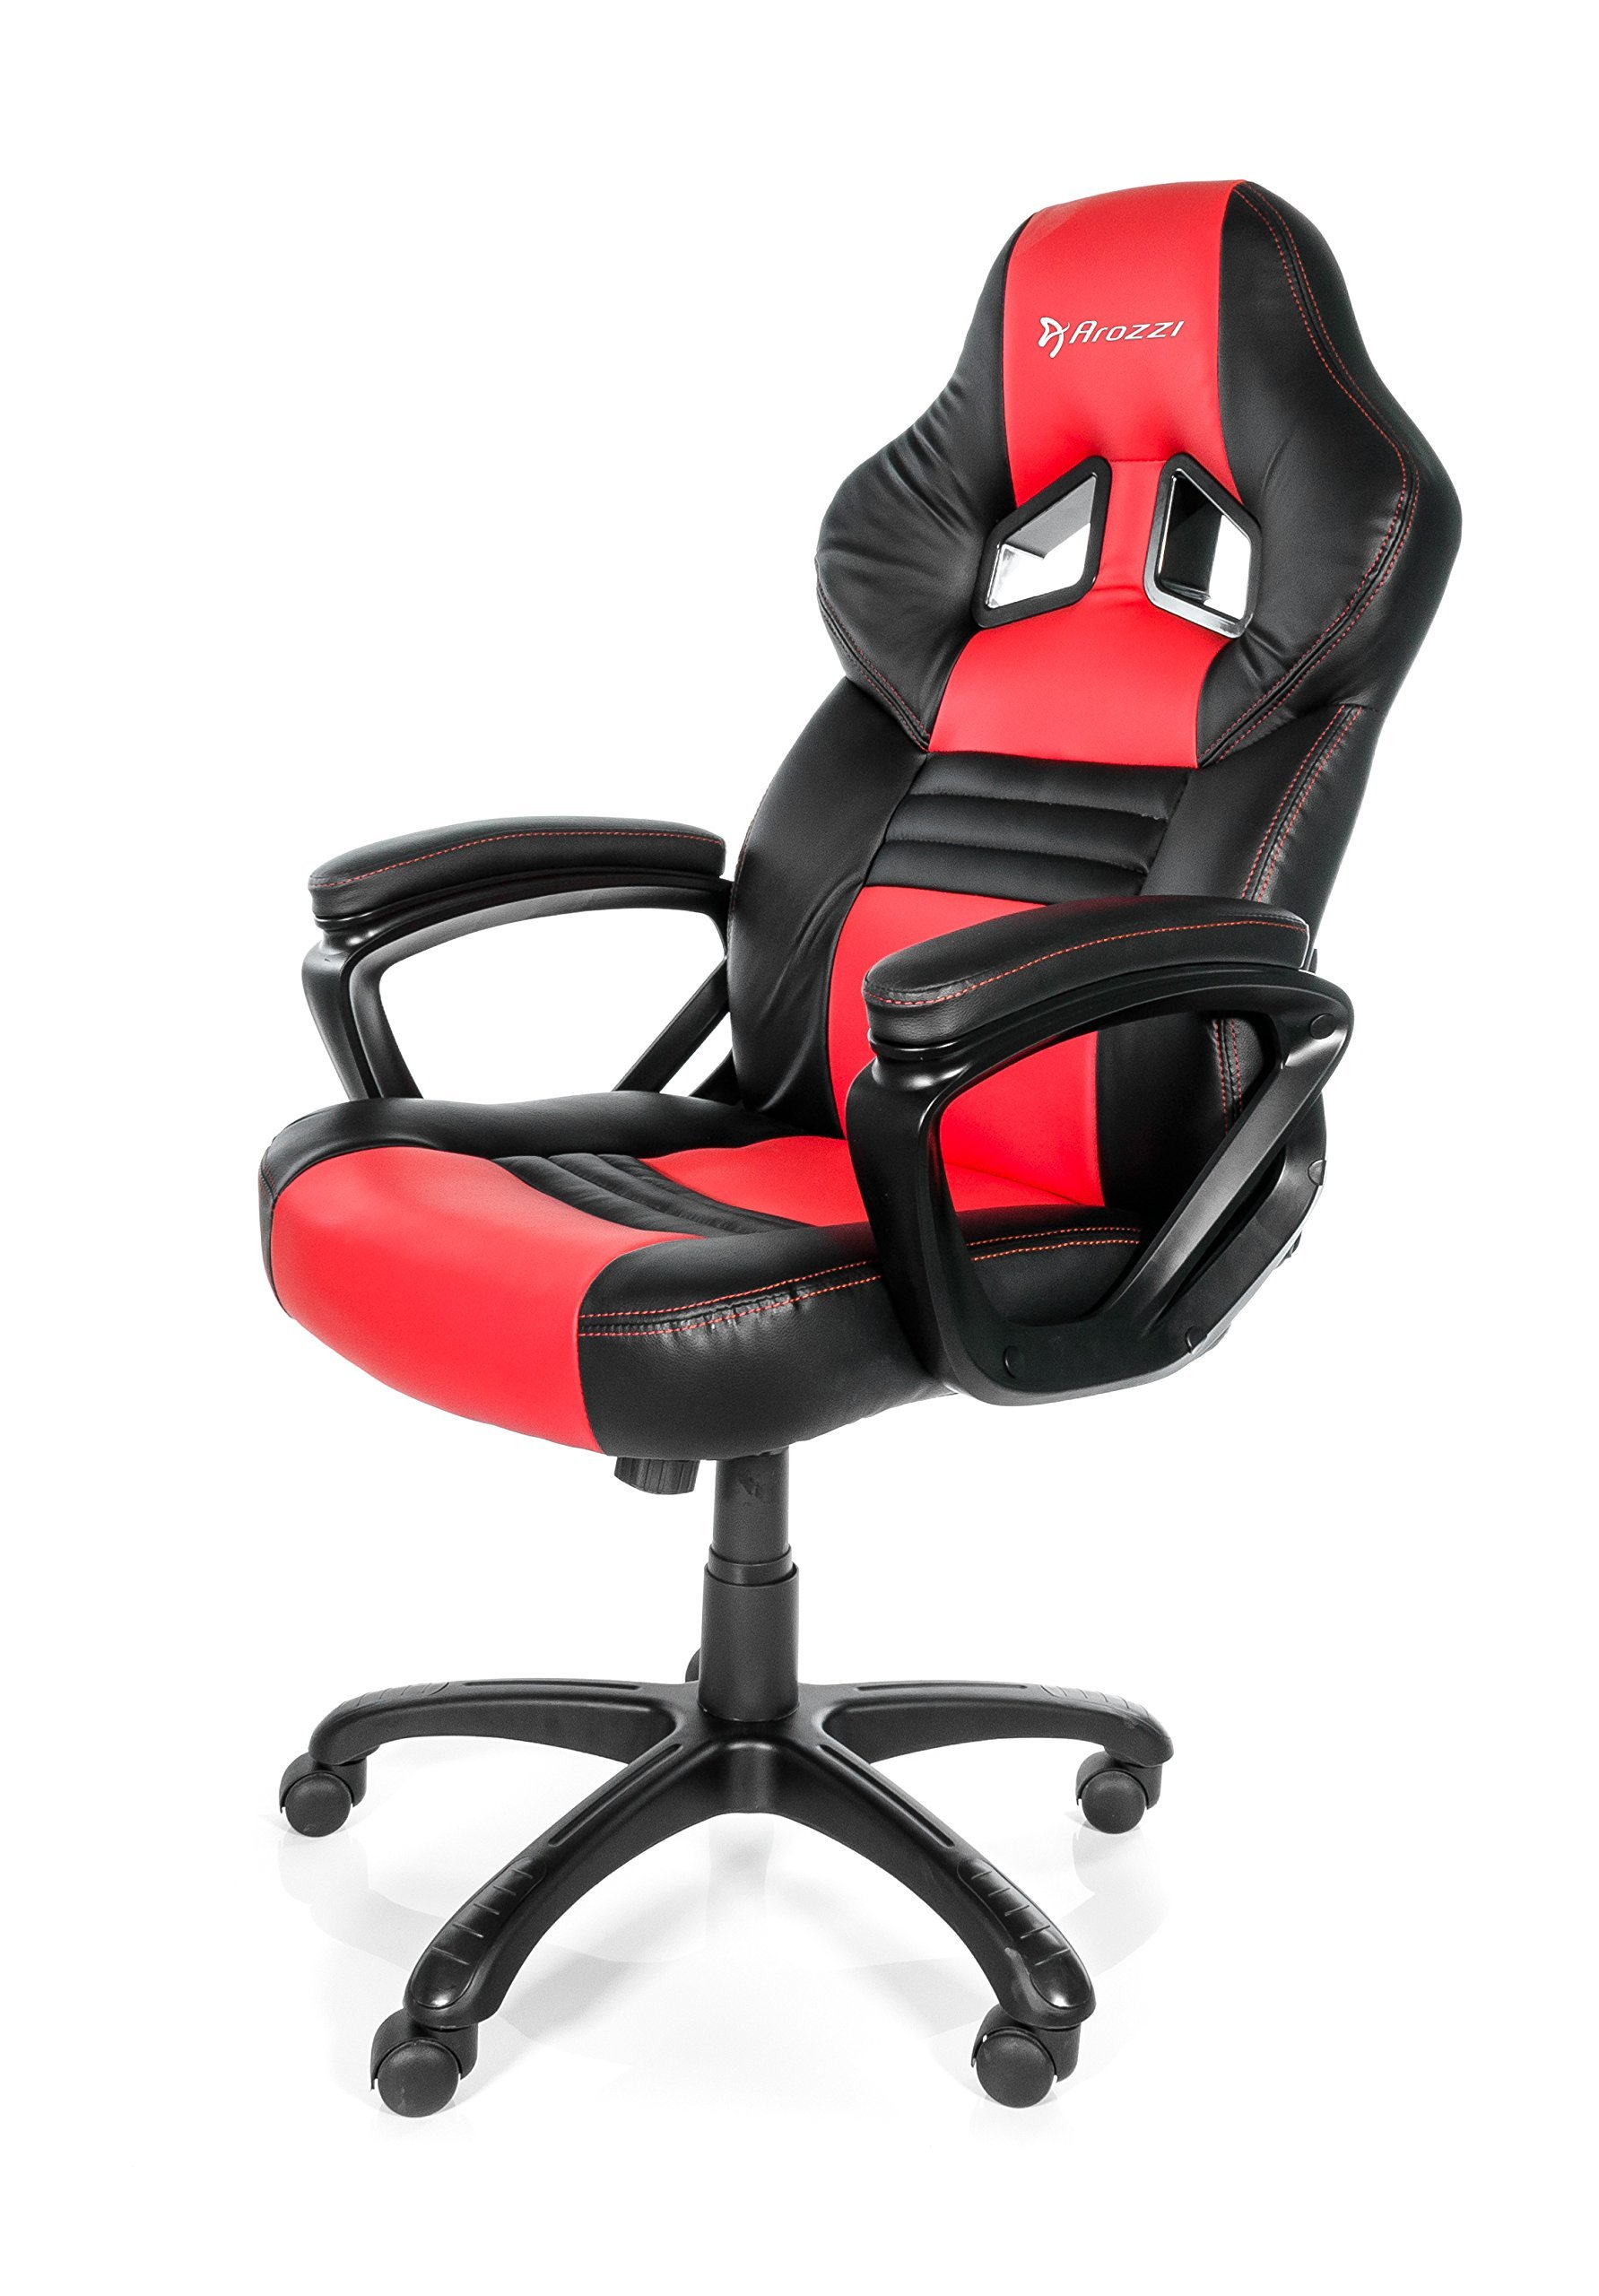 Arozzi Monza Series Gaming Racing Style Swivel Chair, Red/Black by Arozzi